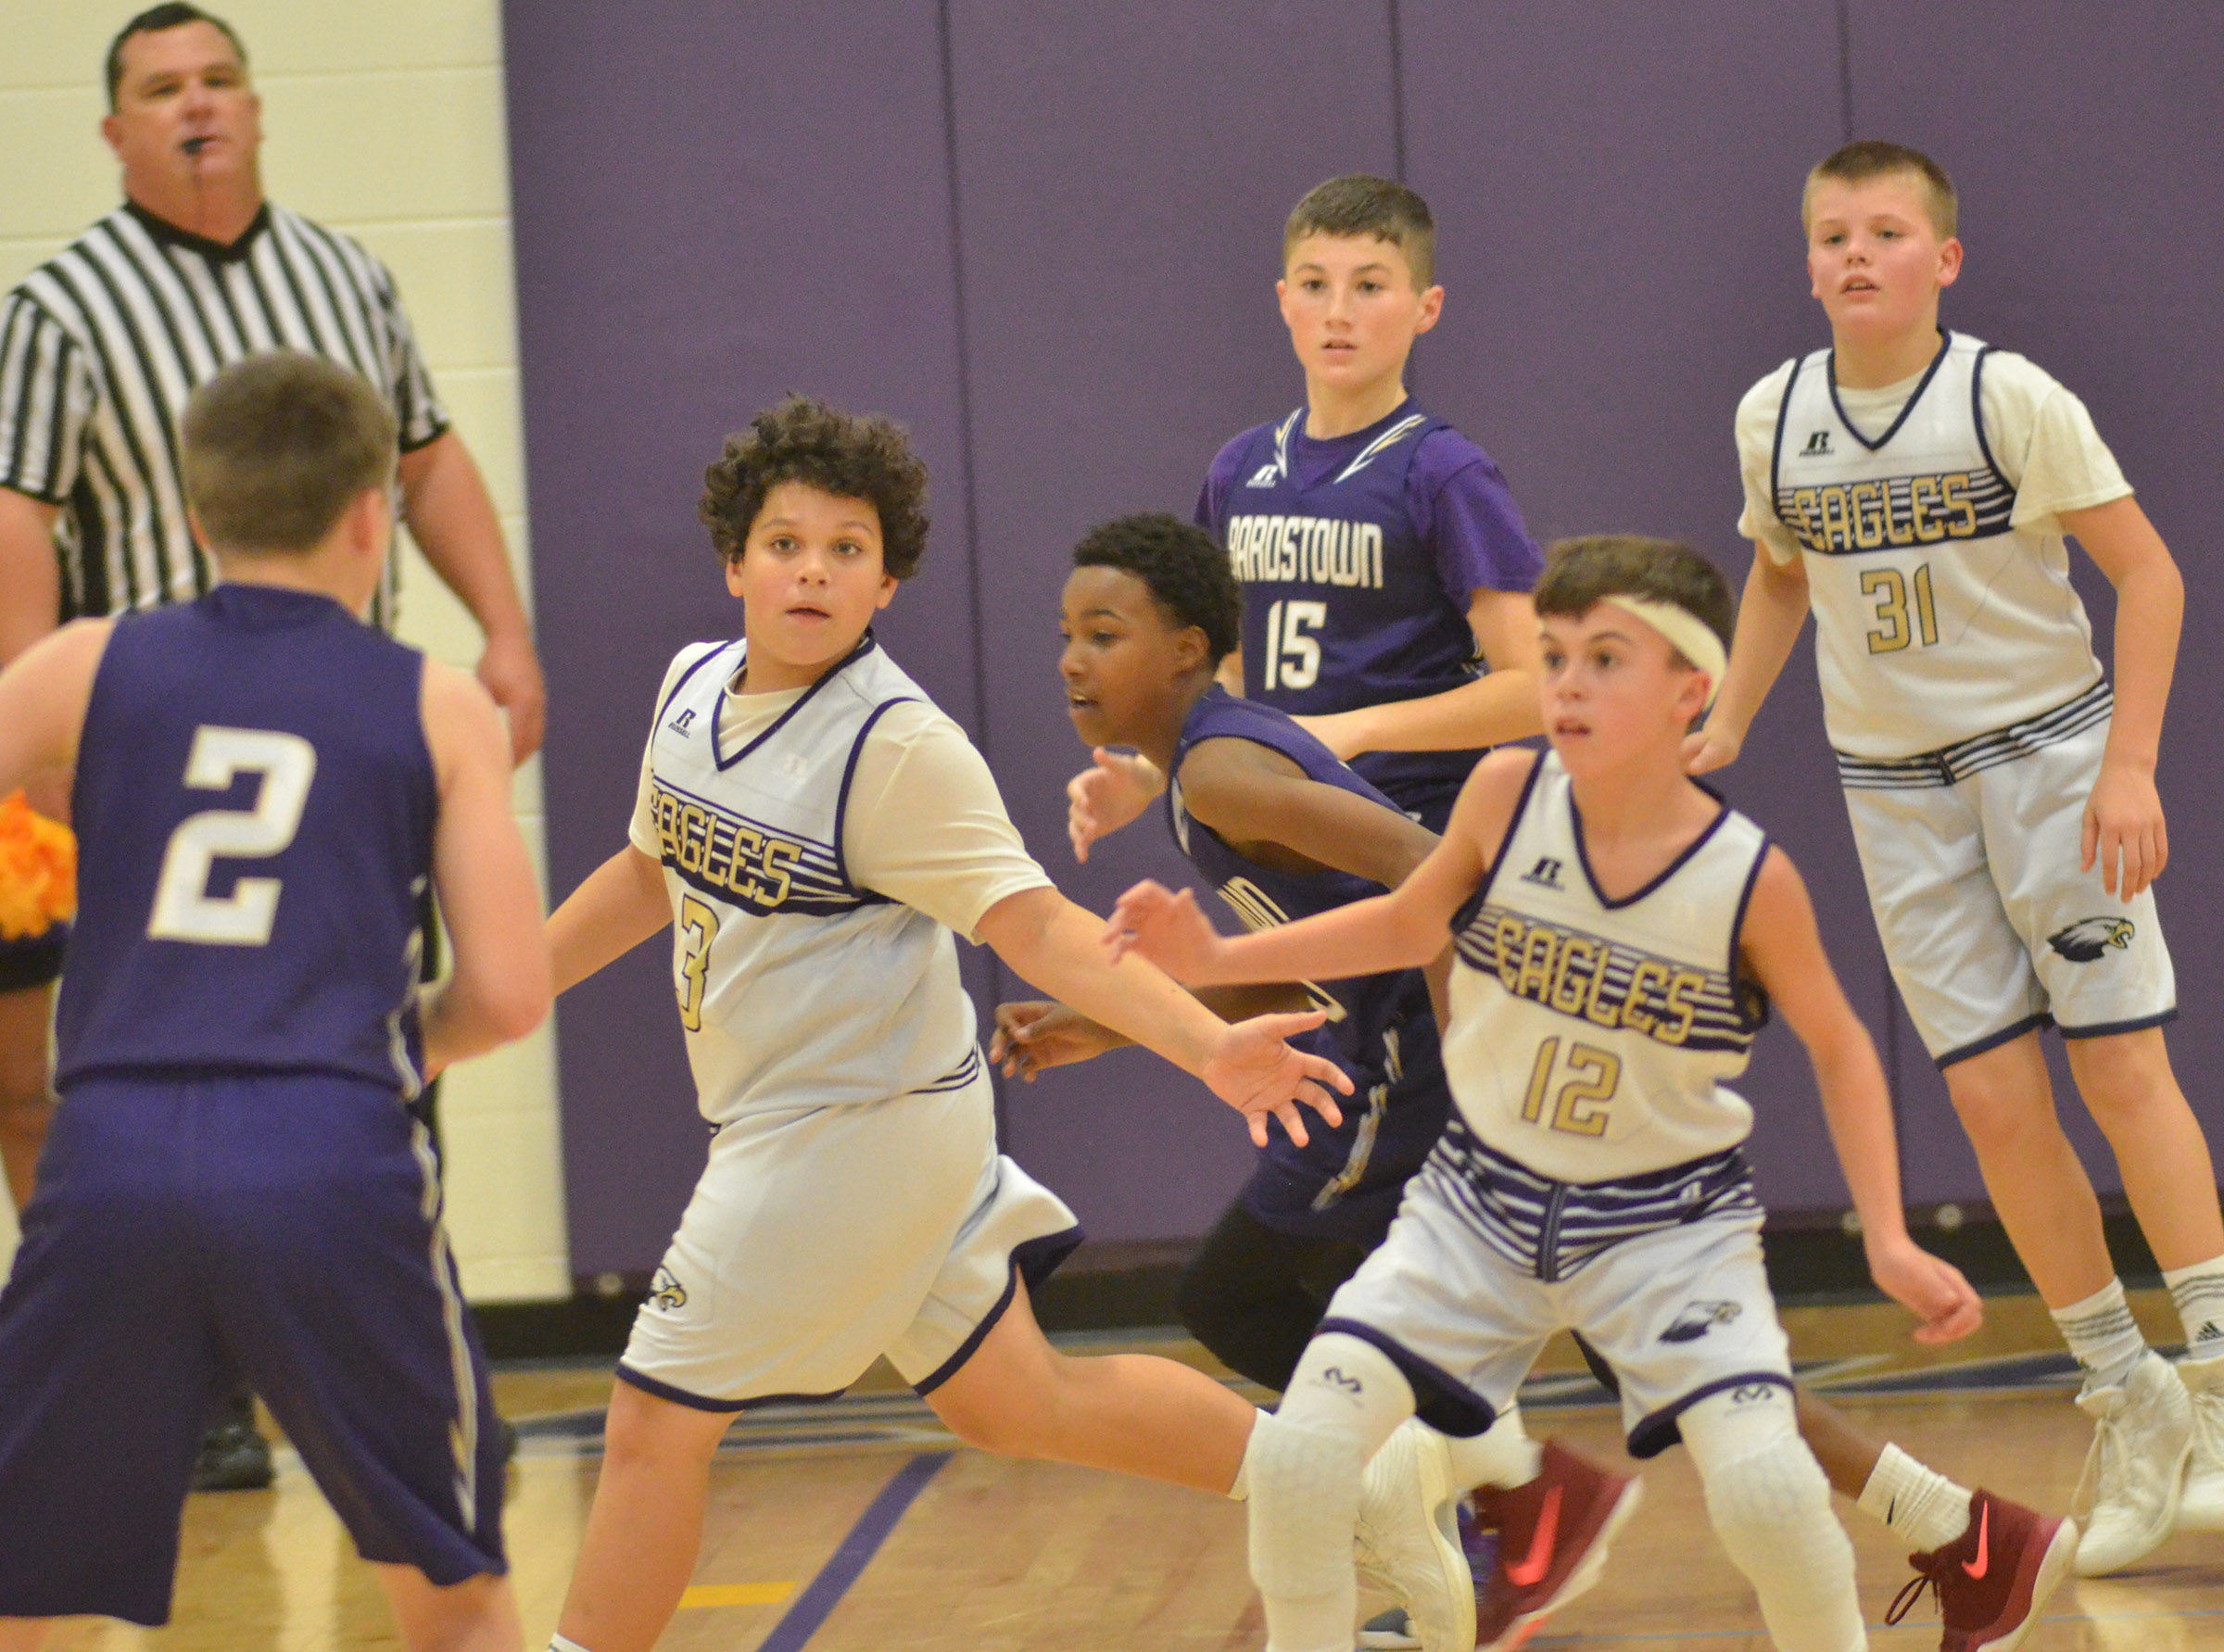 From left, CMS seventh-graders Kaydon Taylor, Chase Hord and Konner Forbis play defense.